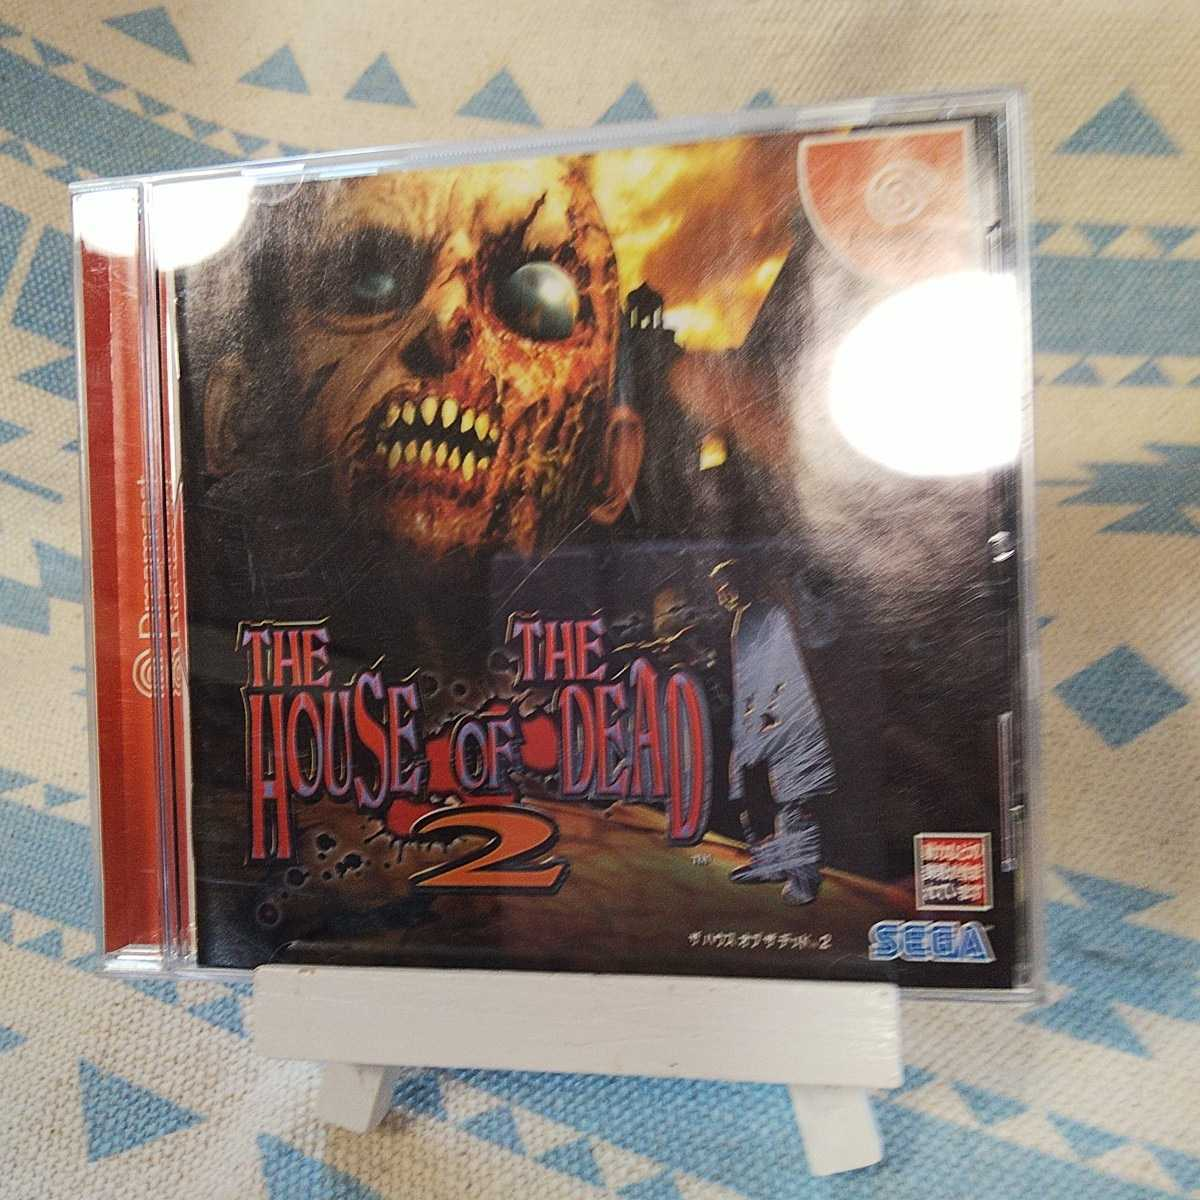 THE HOUSE OF THE DEAD2 ザ ハウス オブ ザ デッド 2 ~Dreamcastソフト